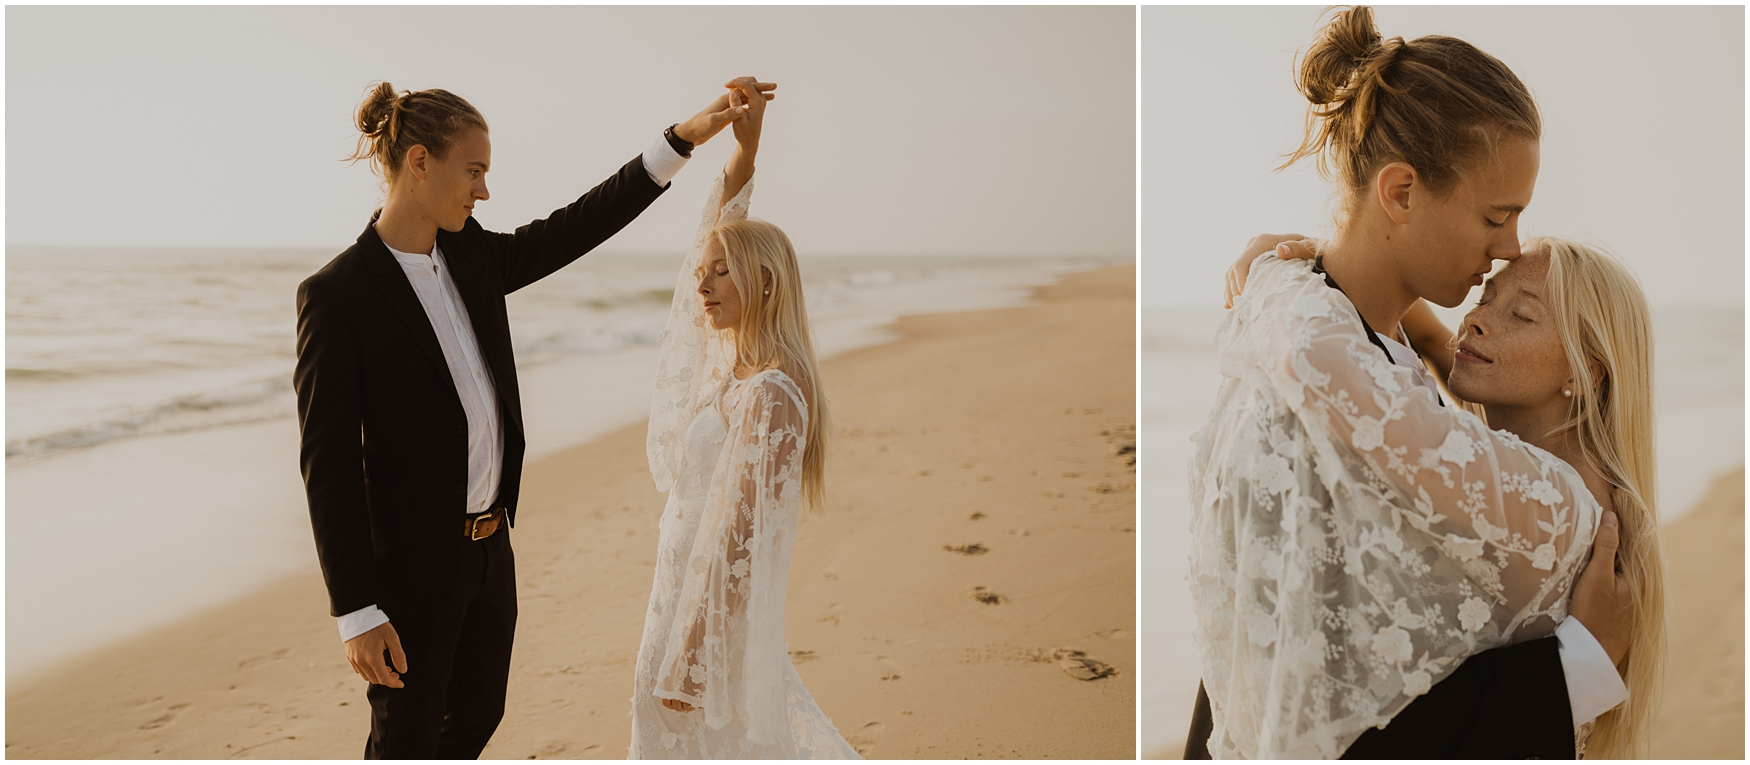 Hannah_Baldwin_Photography_Virginia_Beach_Elopement_Sunrise_0180.jpg